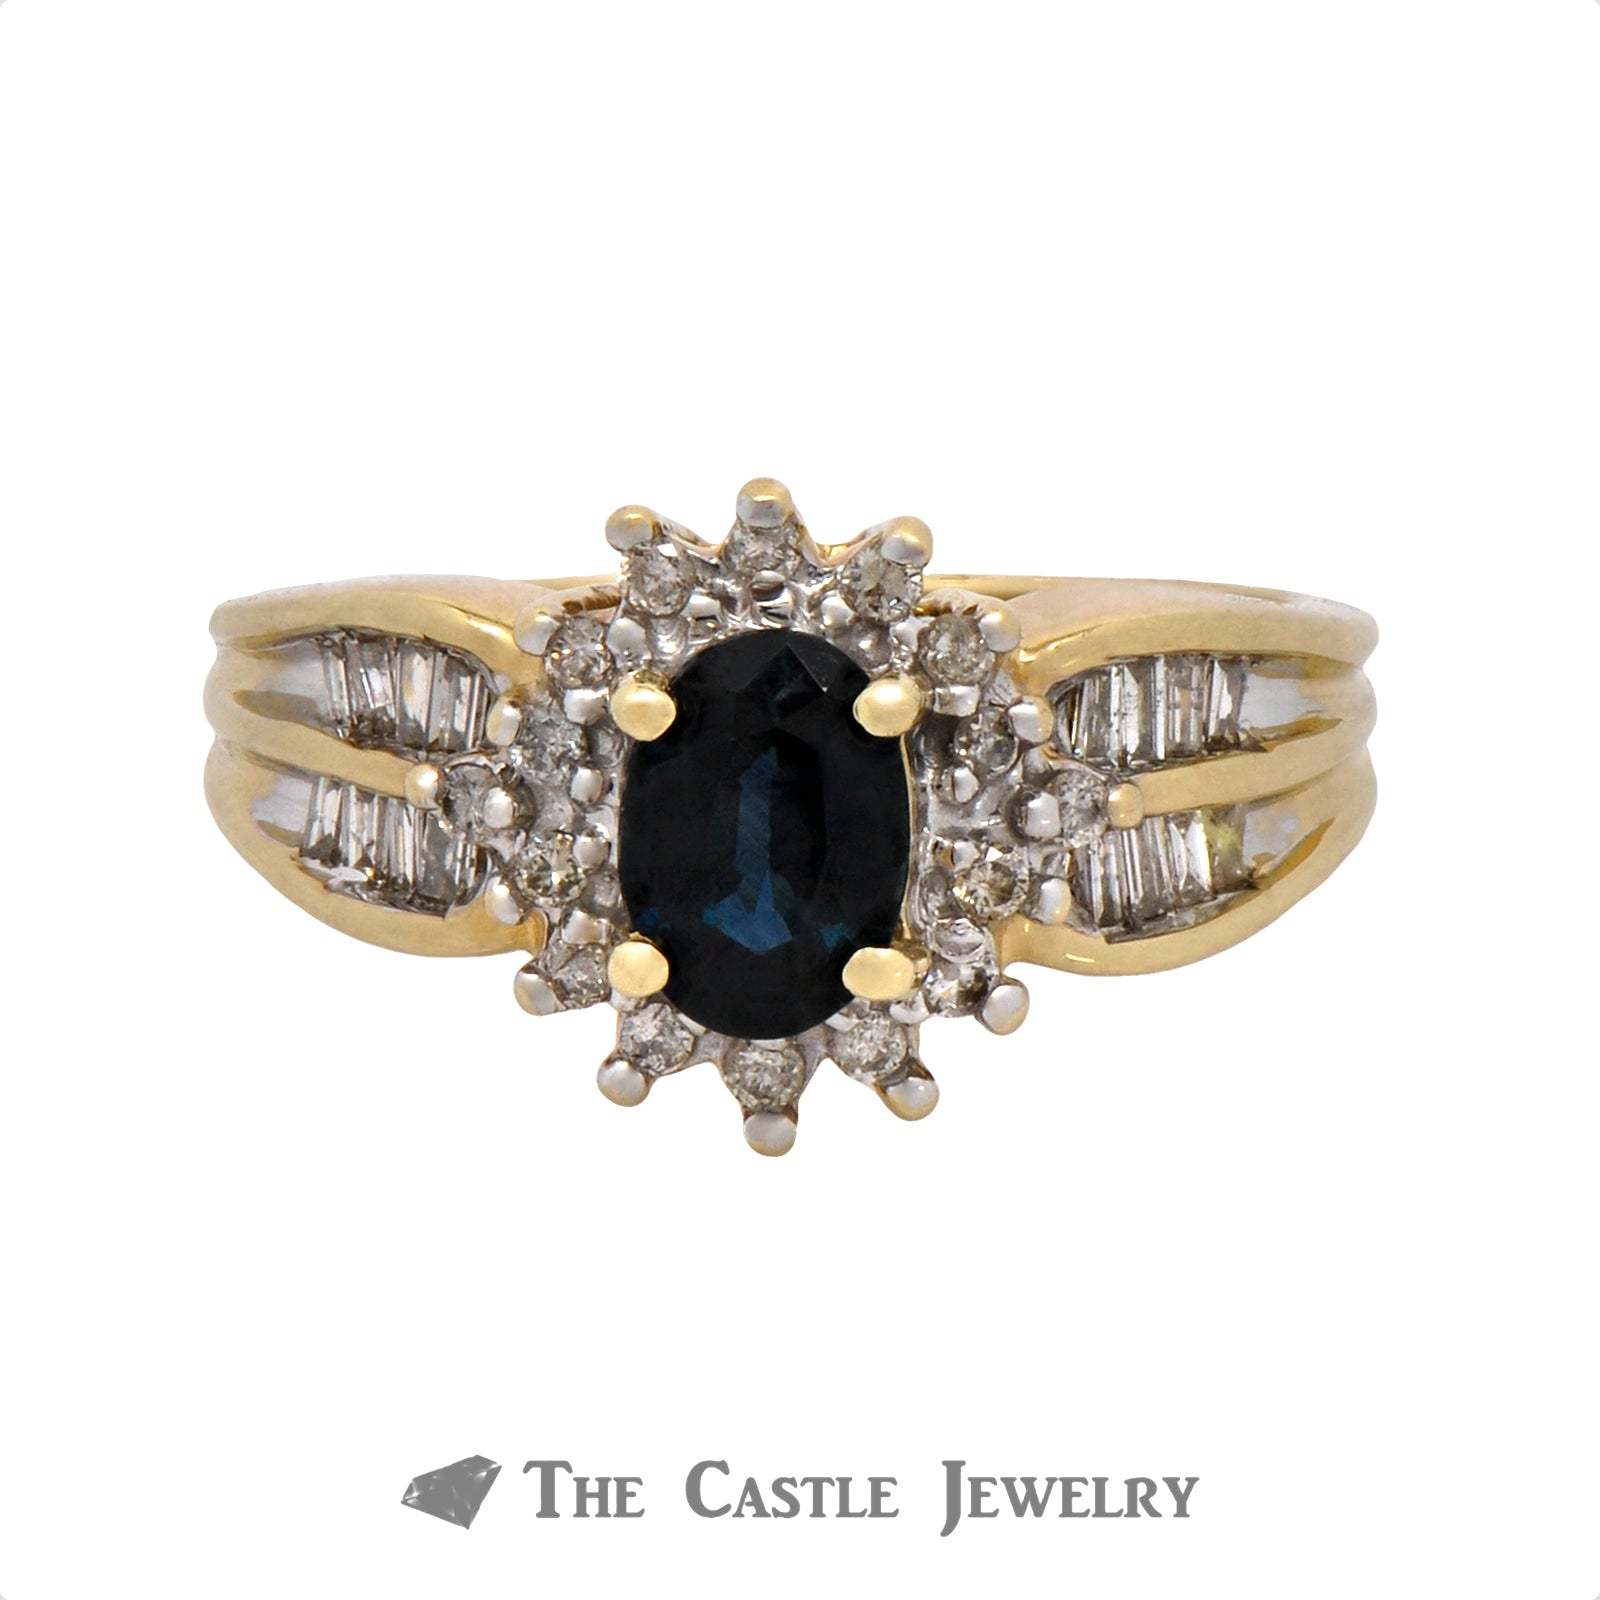 Oval Cut Sapphire Ring with .33cttw Diamond Halo & Accents in 10k Yellow Gold